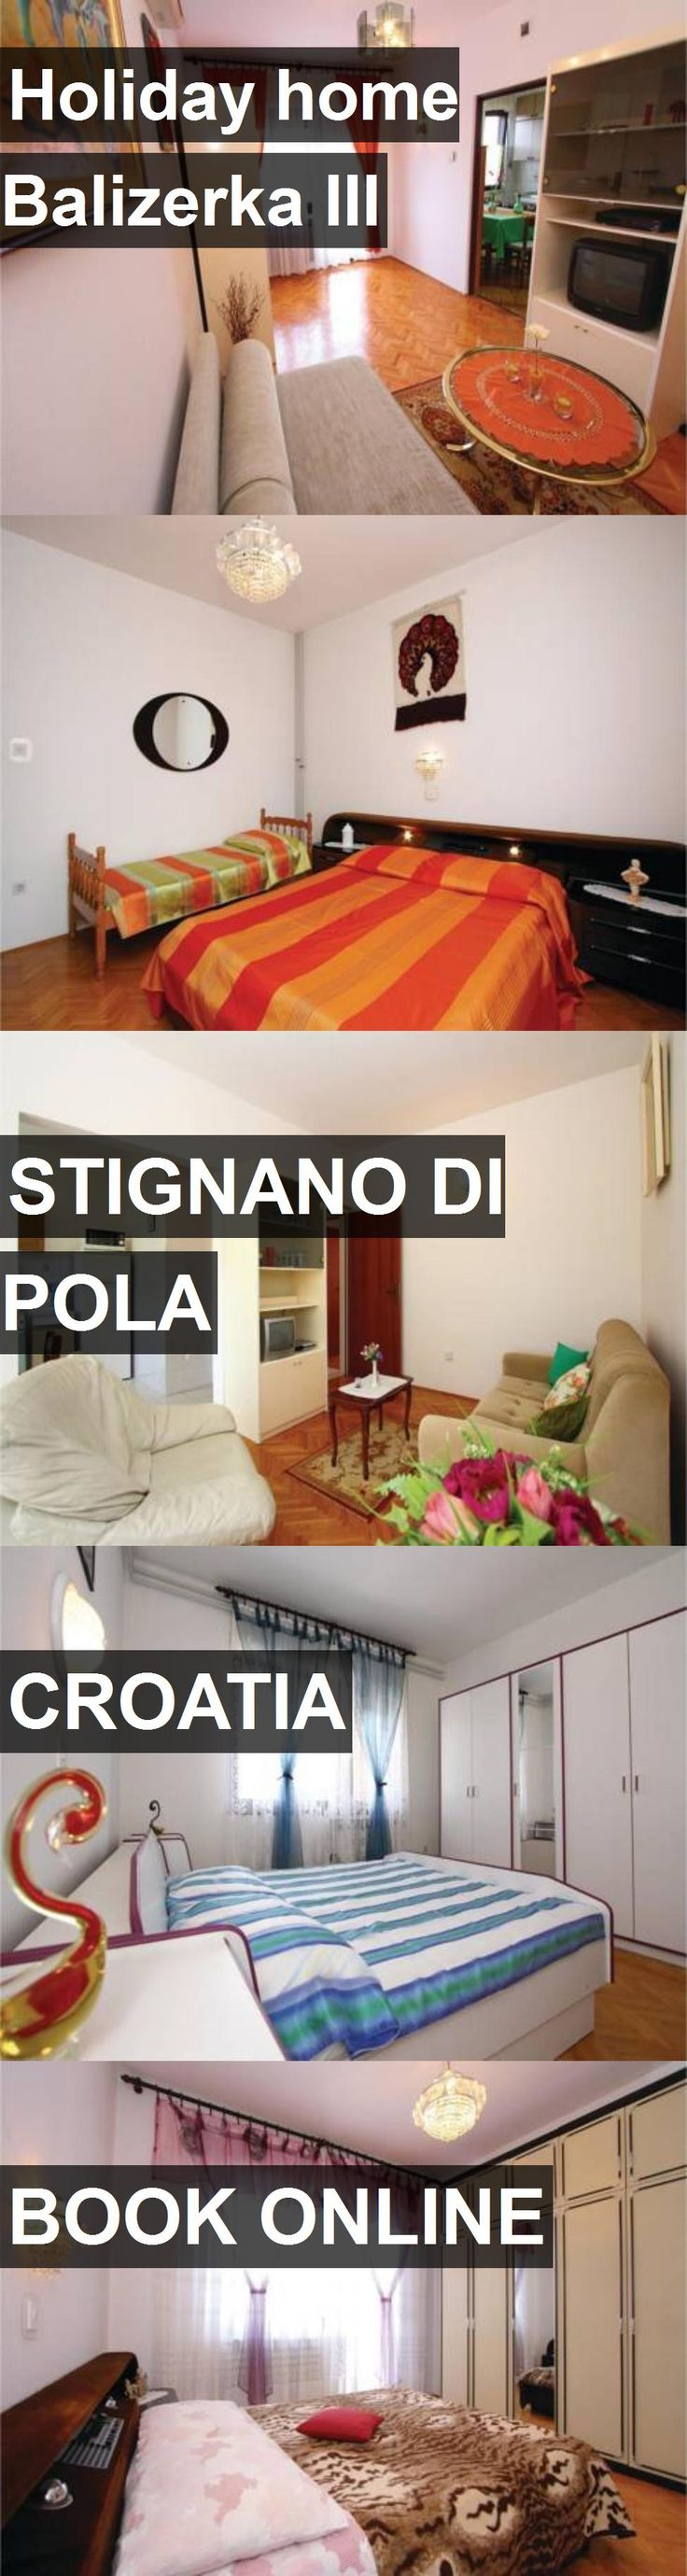 Hotel Holiday home Balizerka III in Stignano di Pola, Croatia. For more information, photos, reviews and best prices please follow the link. #Croatia #StignanodiPola #travel #vacation #hotel